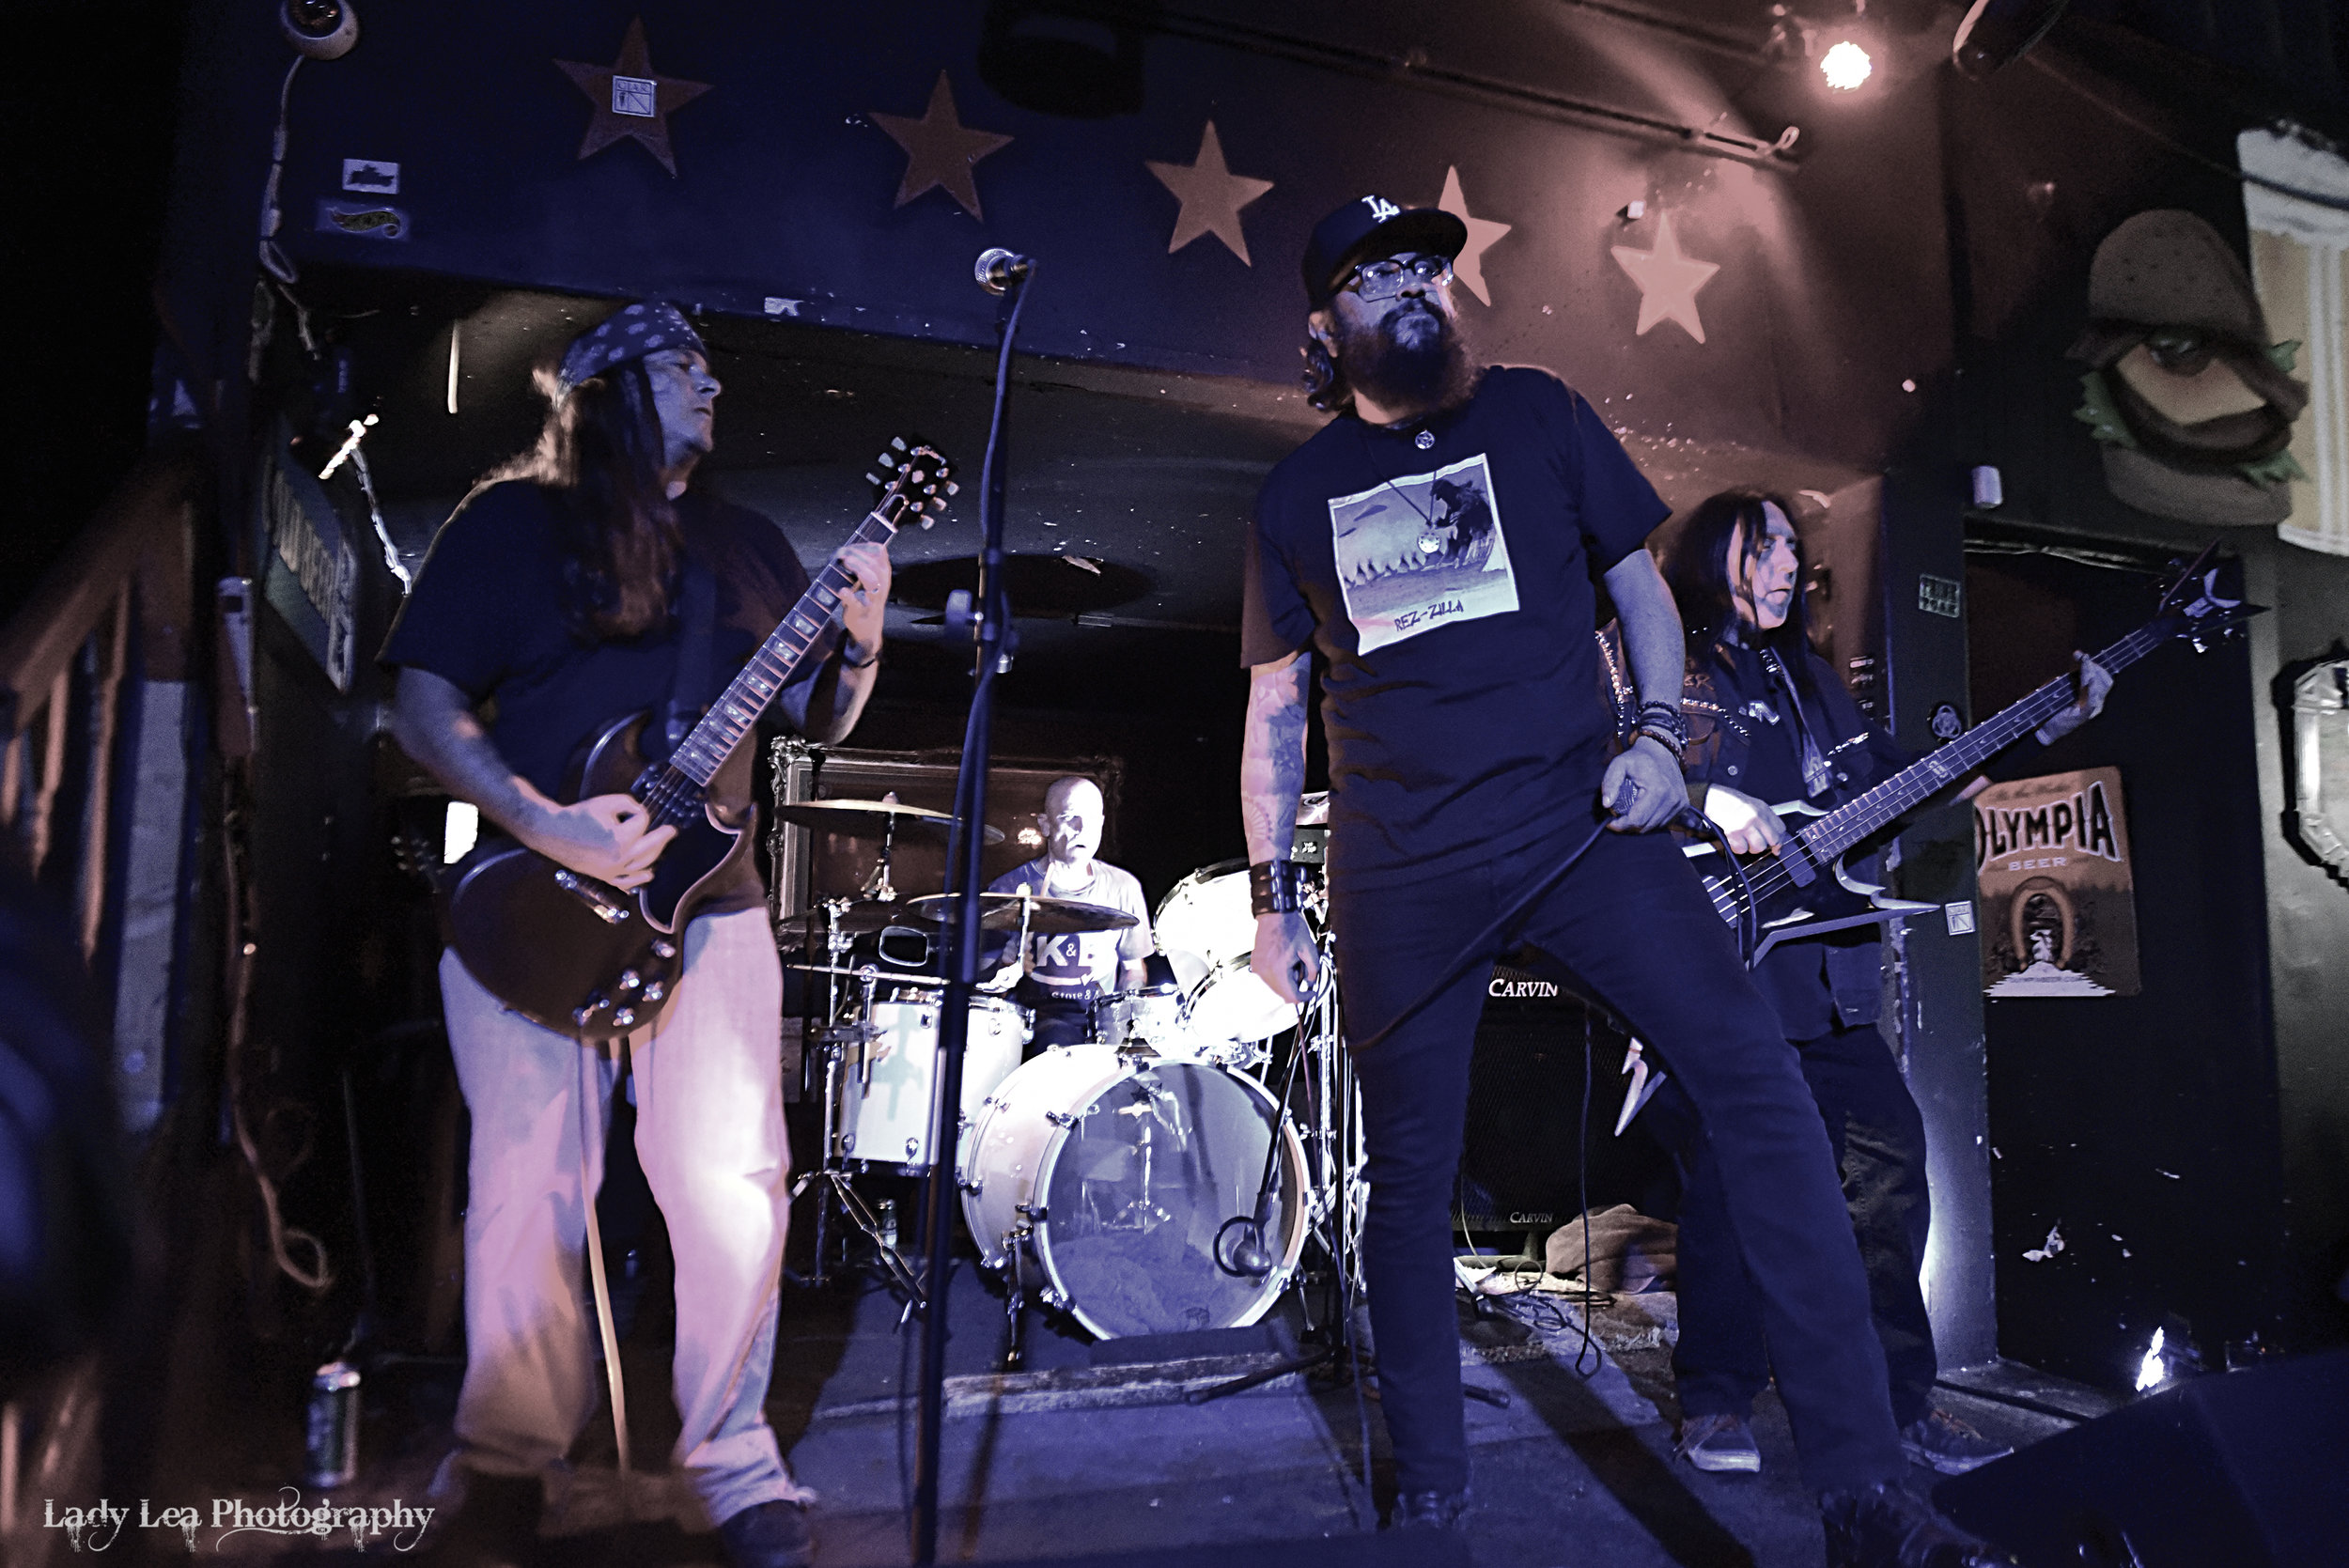 Cooter Brown Live at 5 Star Bar 10/11/18 - Photo by Lady Lea Photography